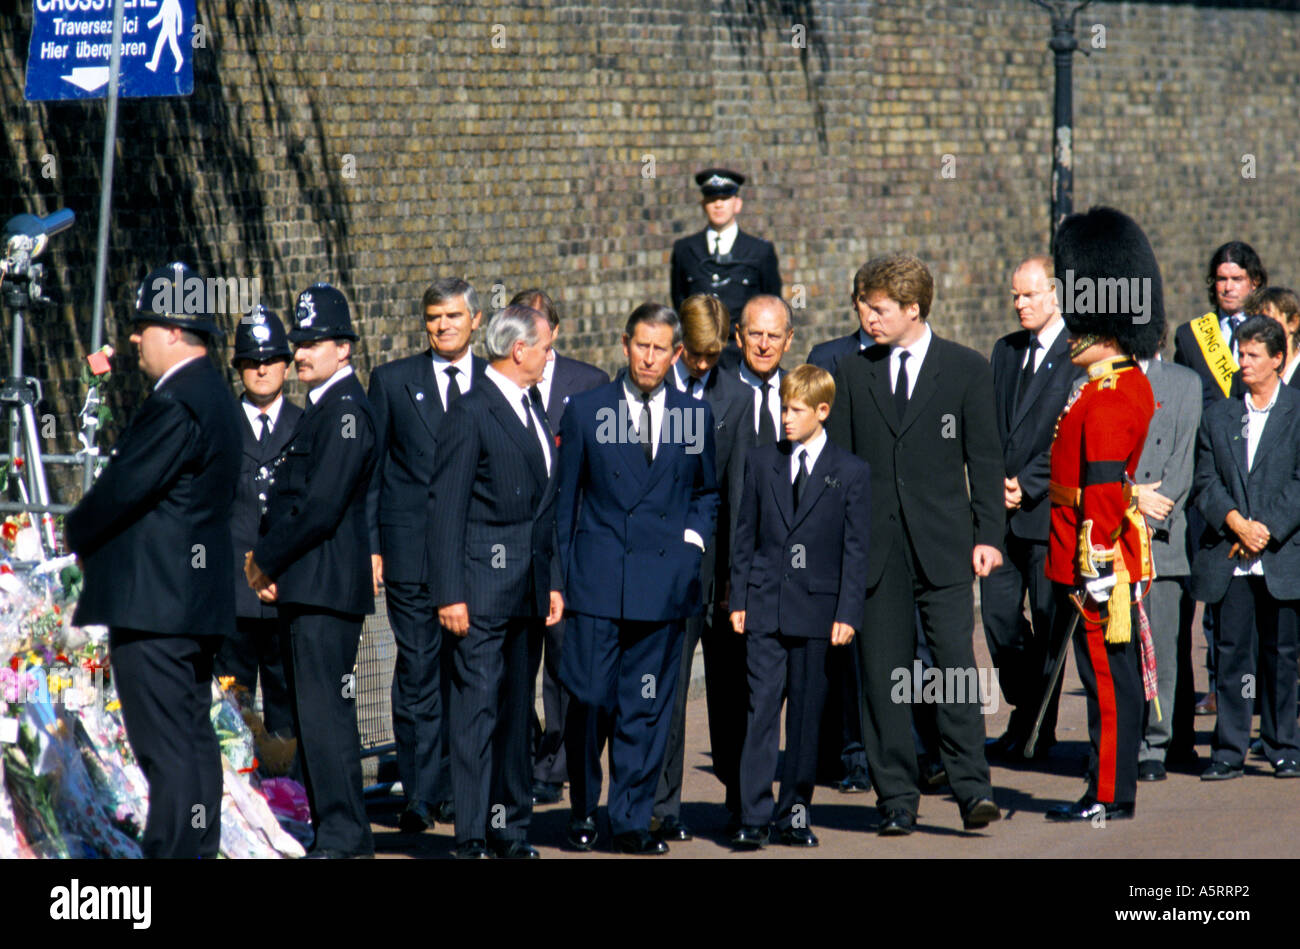 FUNERAL OF DIANA PRINCESS OF WALES Stock Photo - Alamy